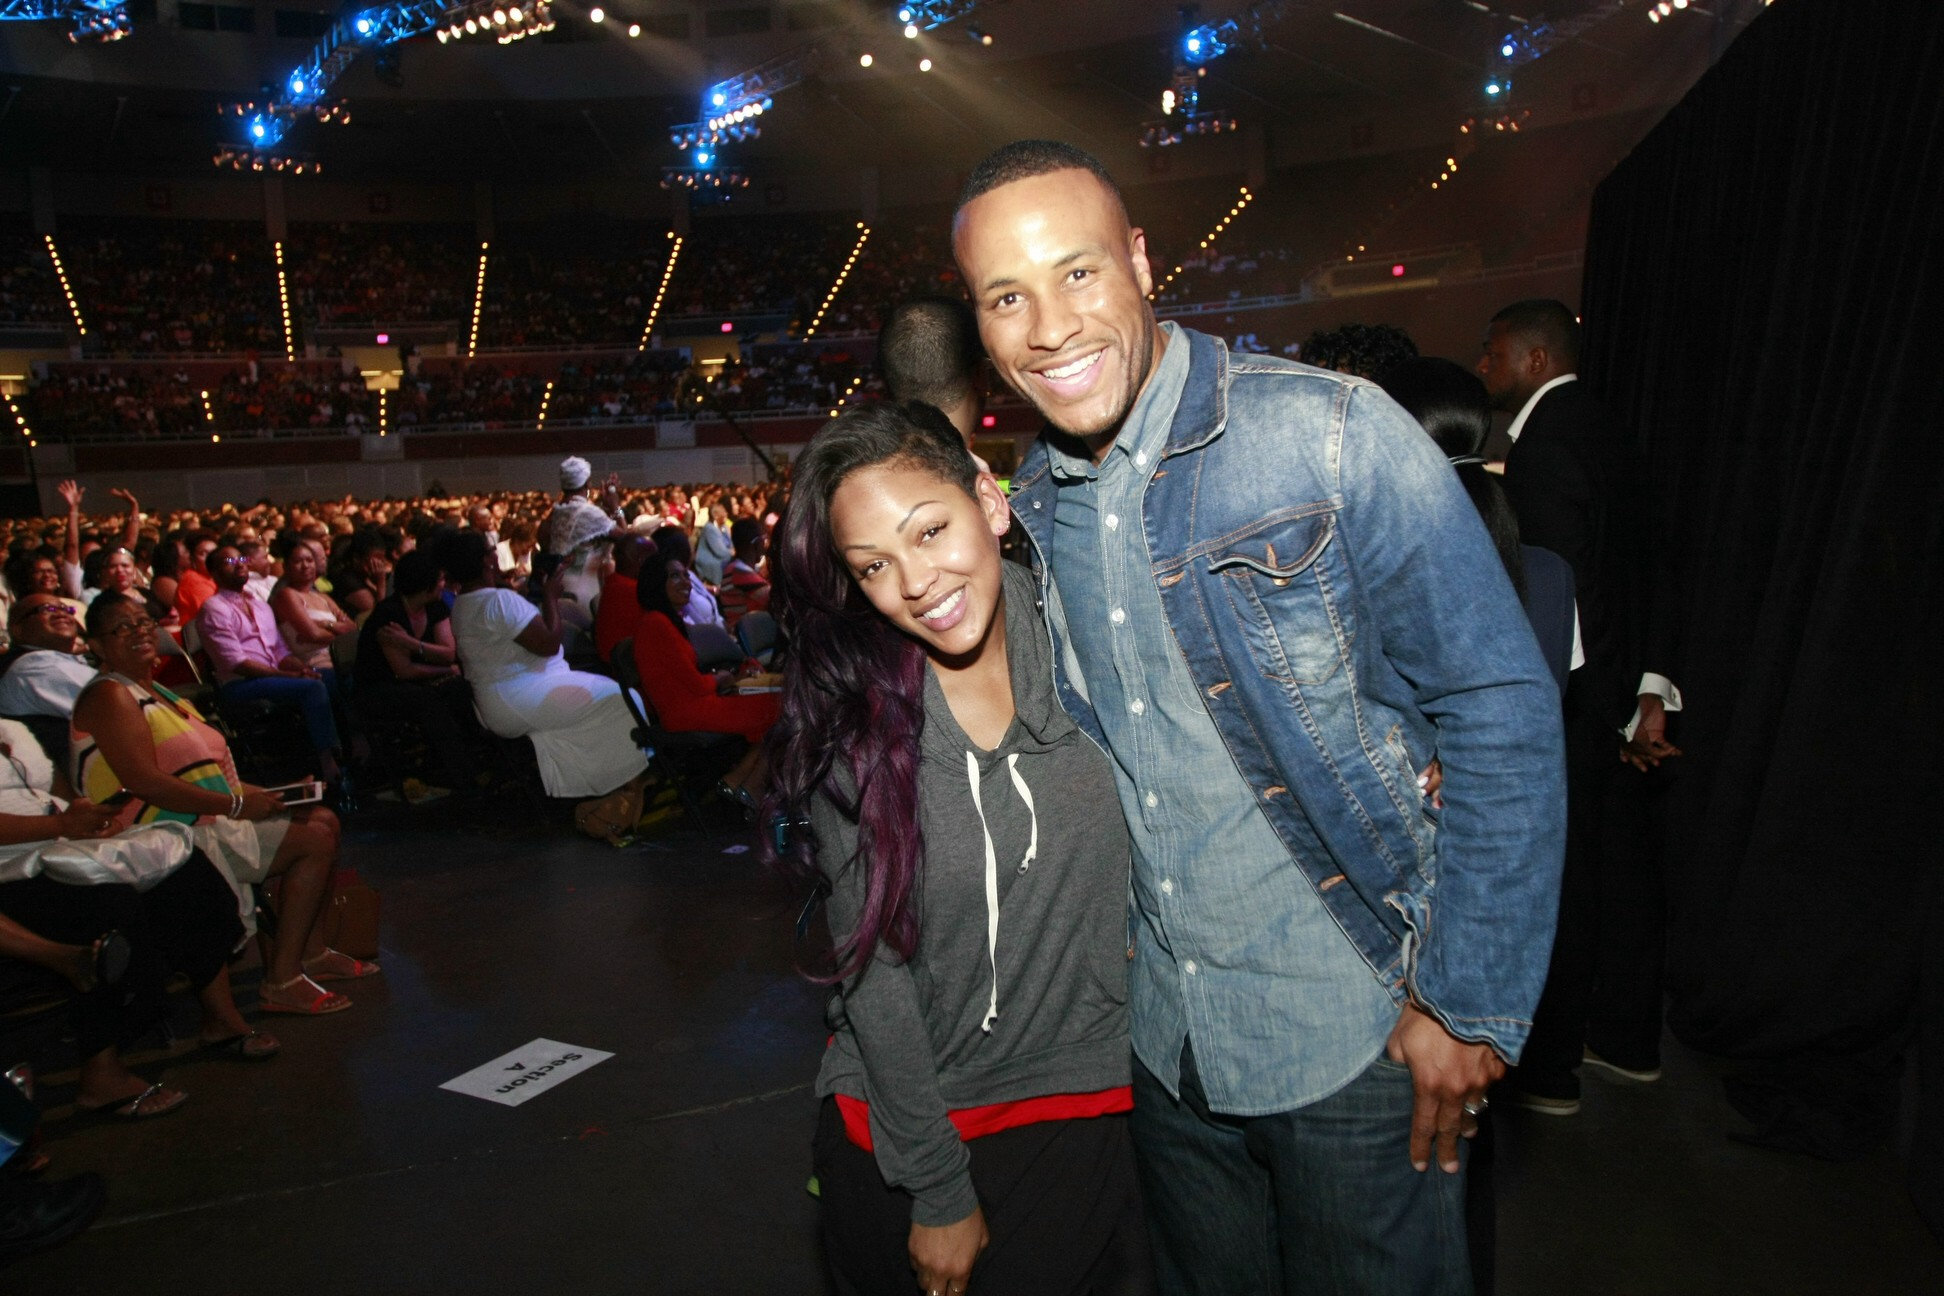 Actress megan good and husband film executive devon franklin sharing